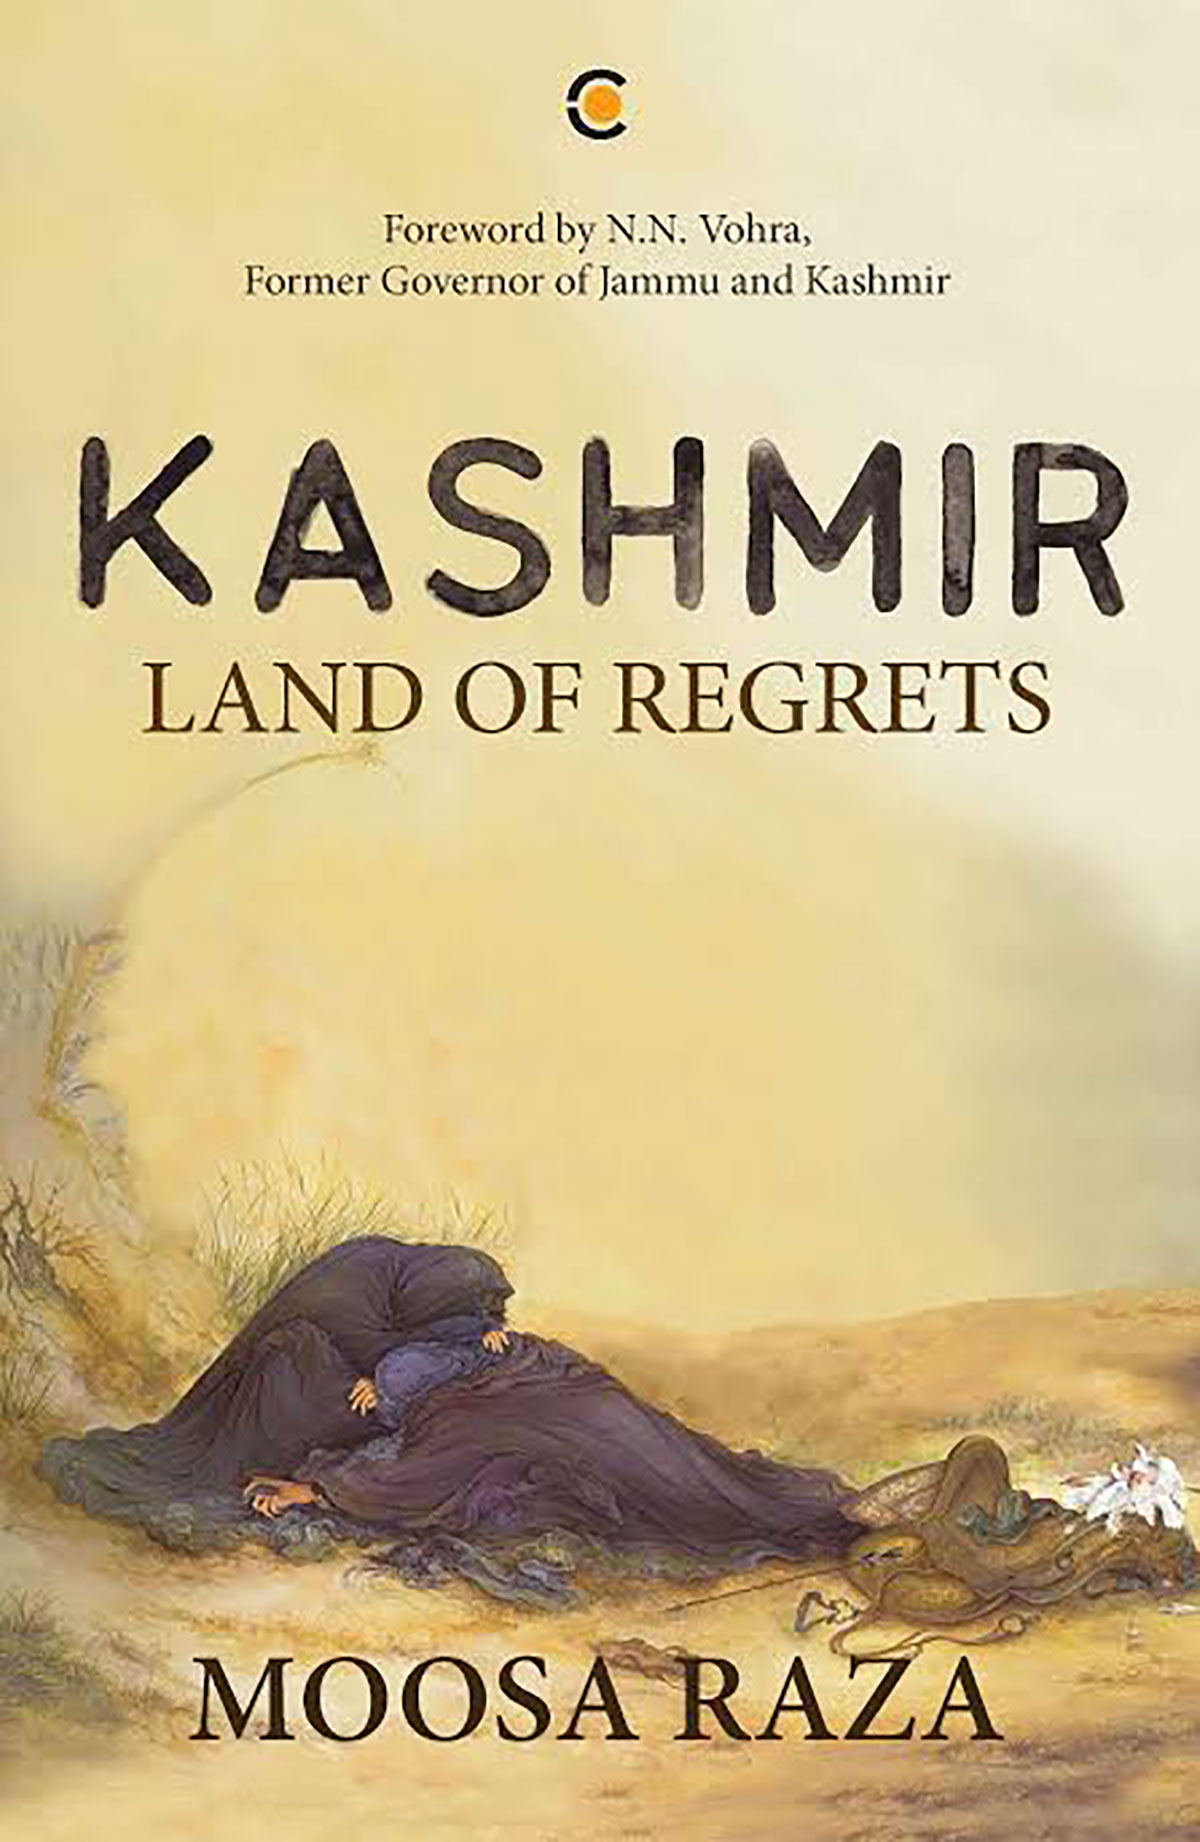 Moosa-Raza - Book Cover Photo KAshmir Land of Regrets